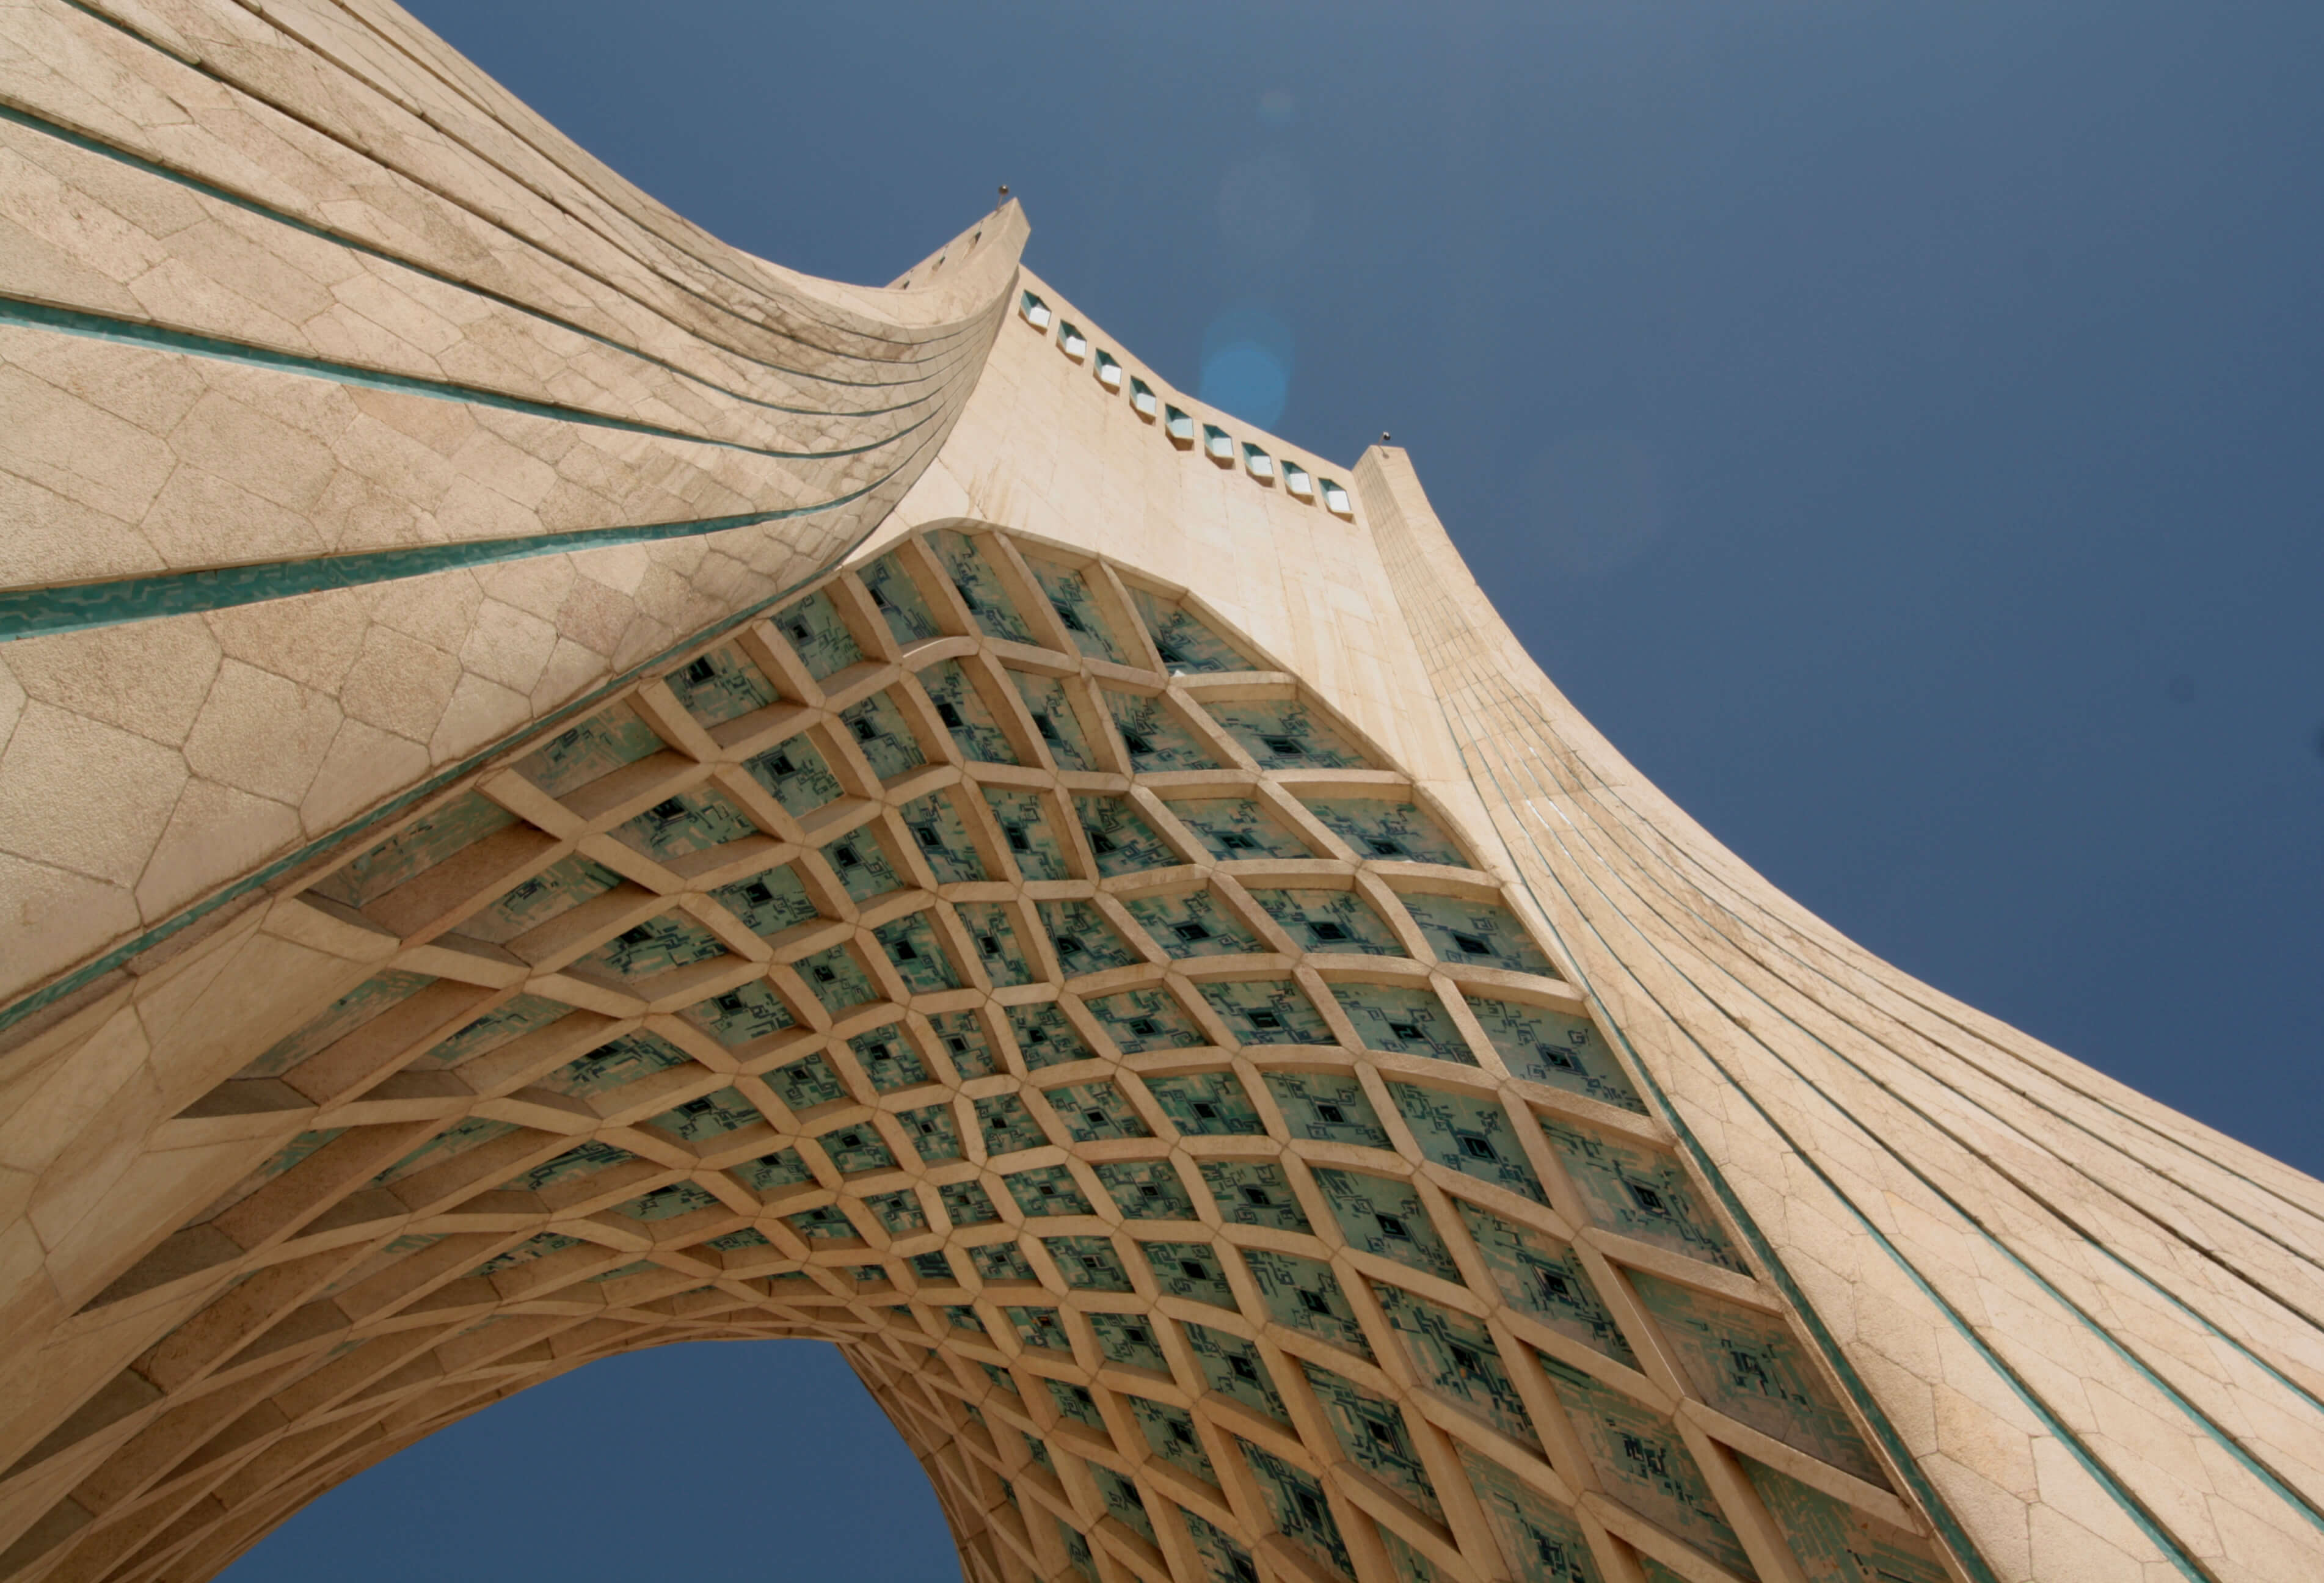 The Azadi Tower in Tehran. © Blondinrikard Fröberg / Flickr